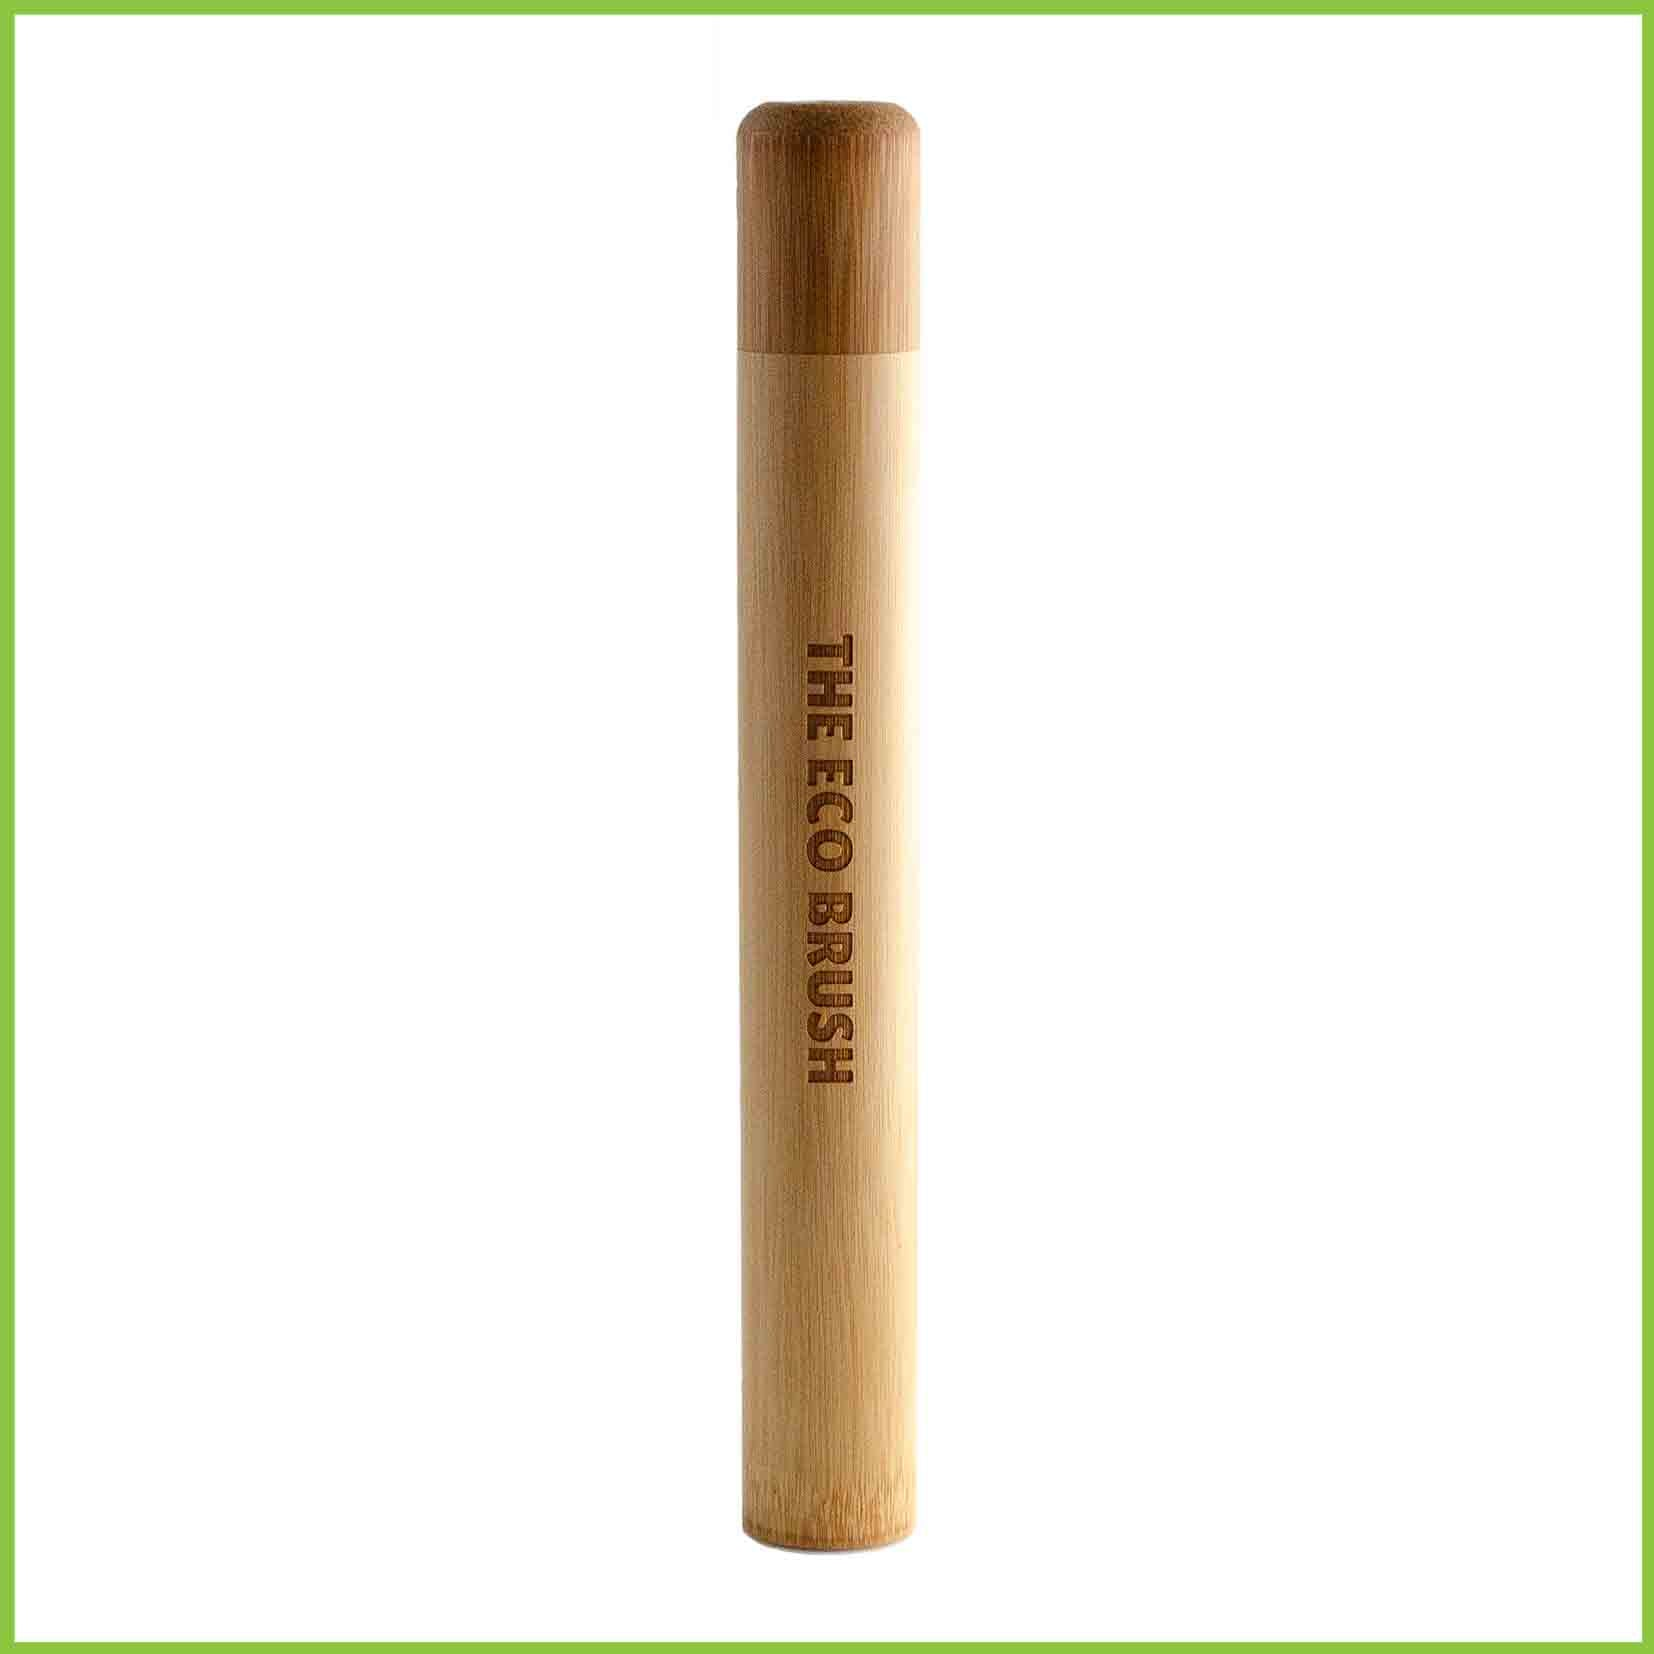 A toothbrush travel case from from bamboo.